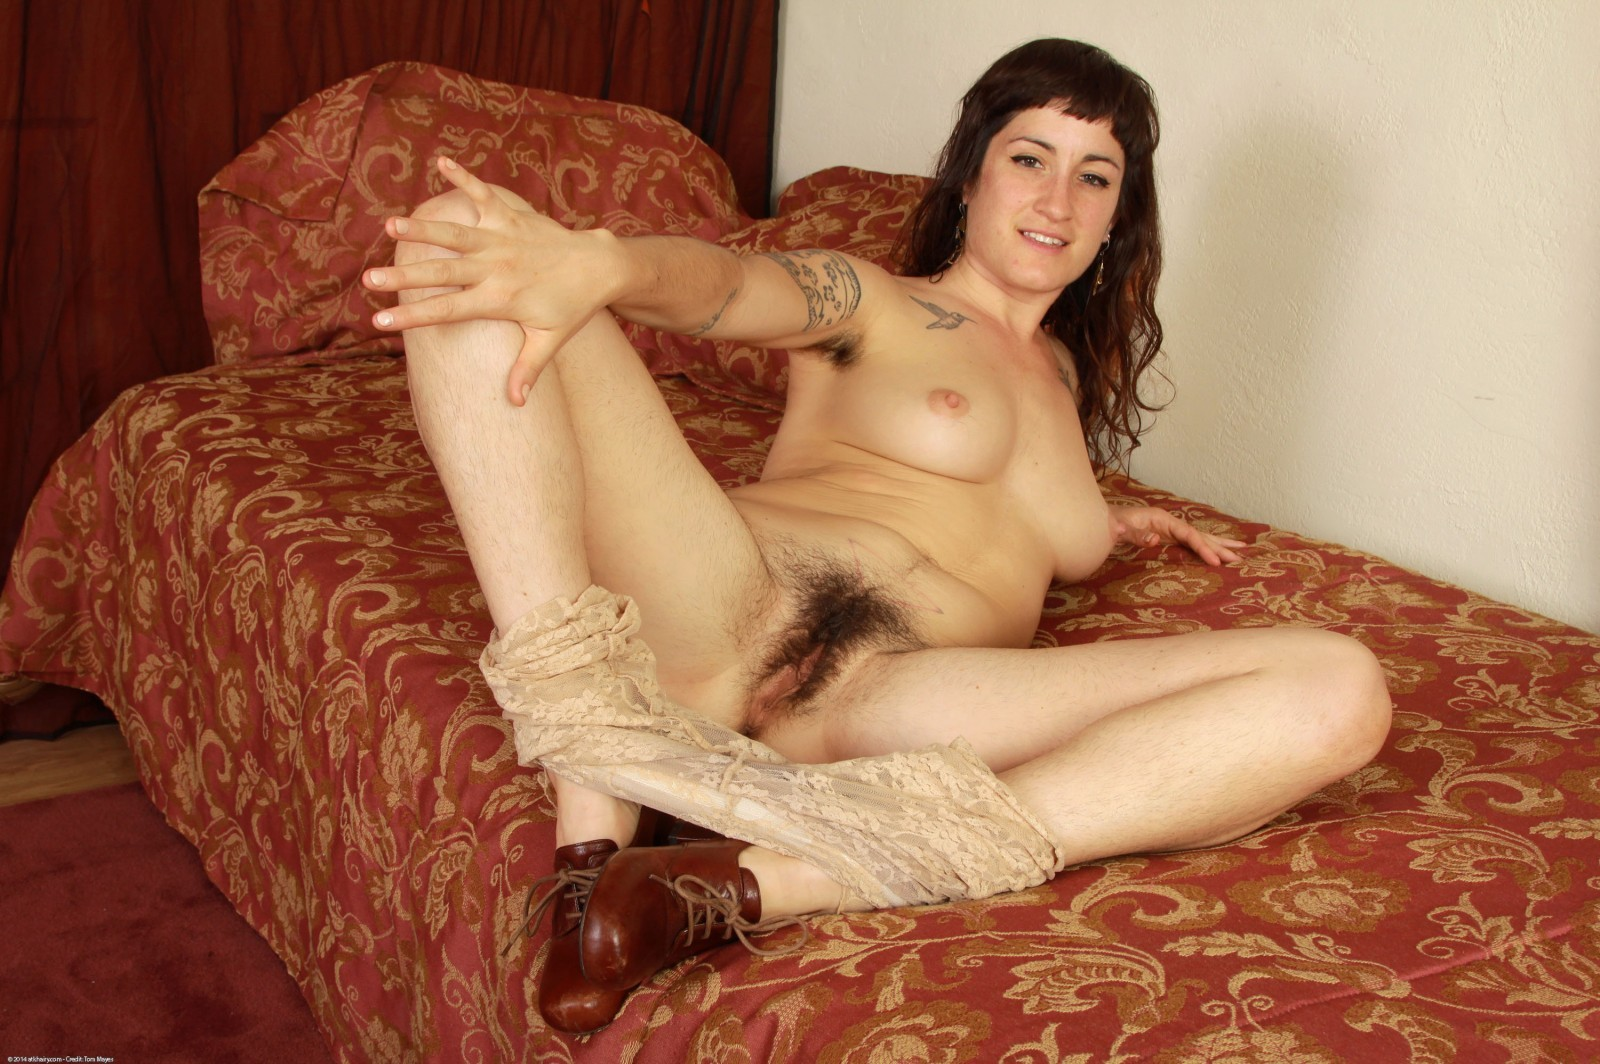 Untamed tattooed stacey removes clothes and swells her shaggy uterus